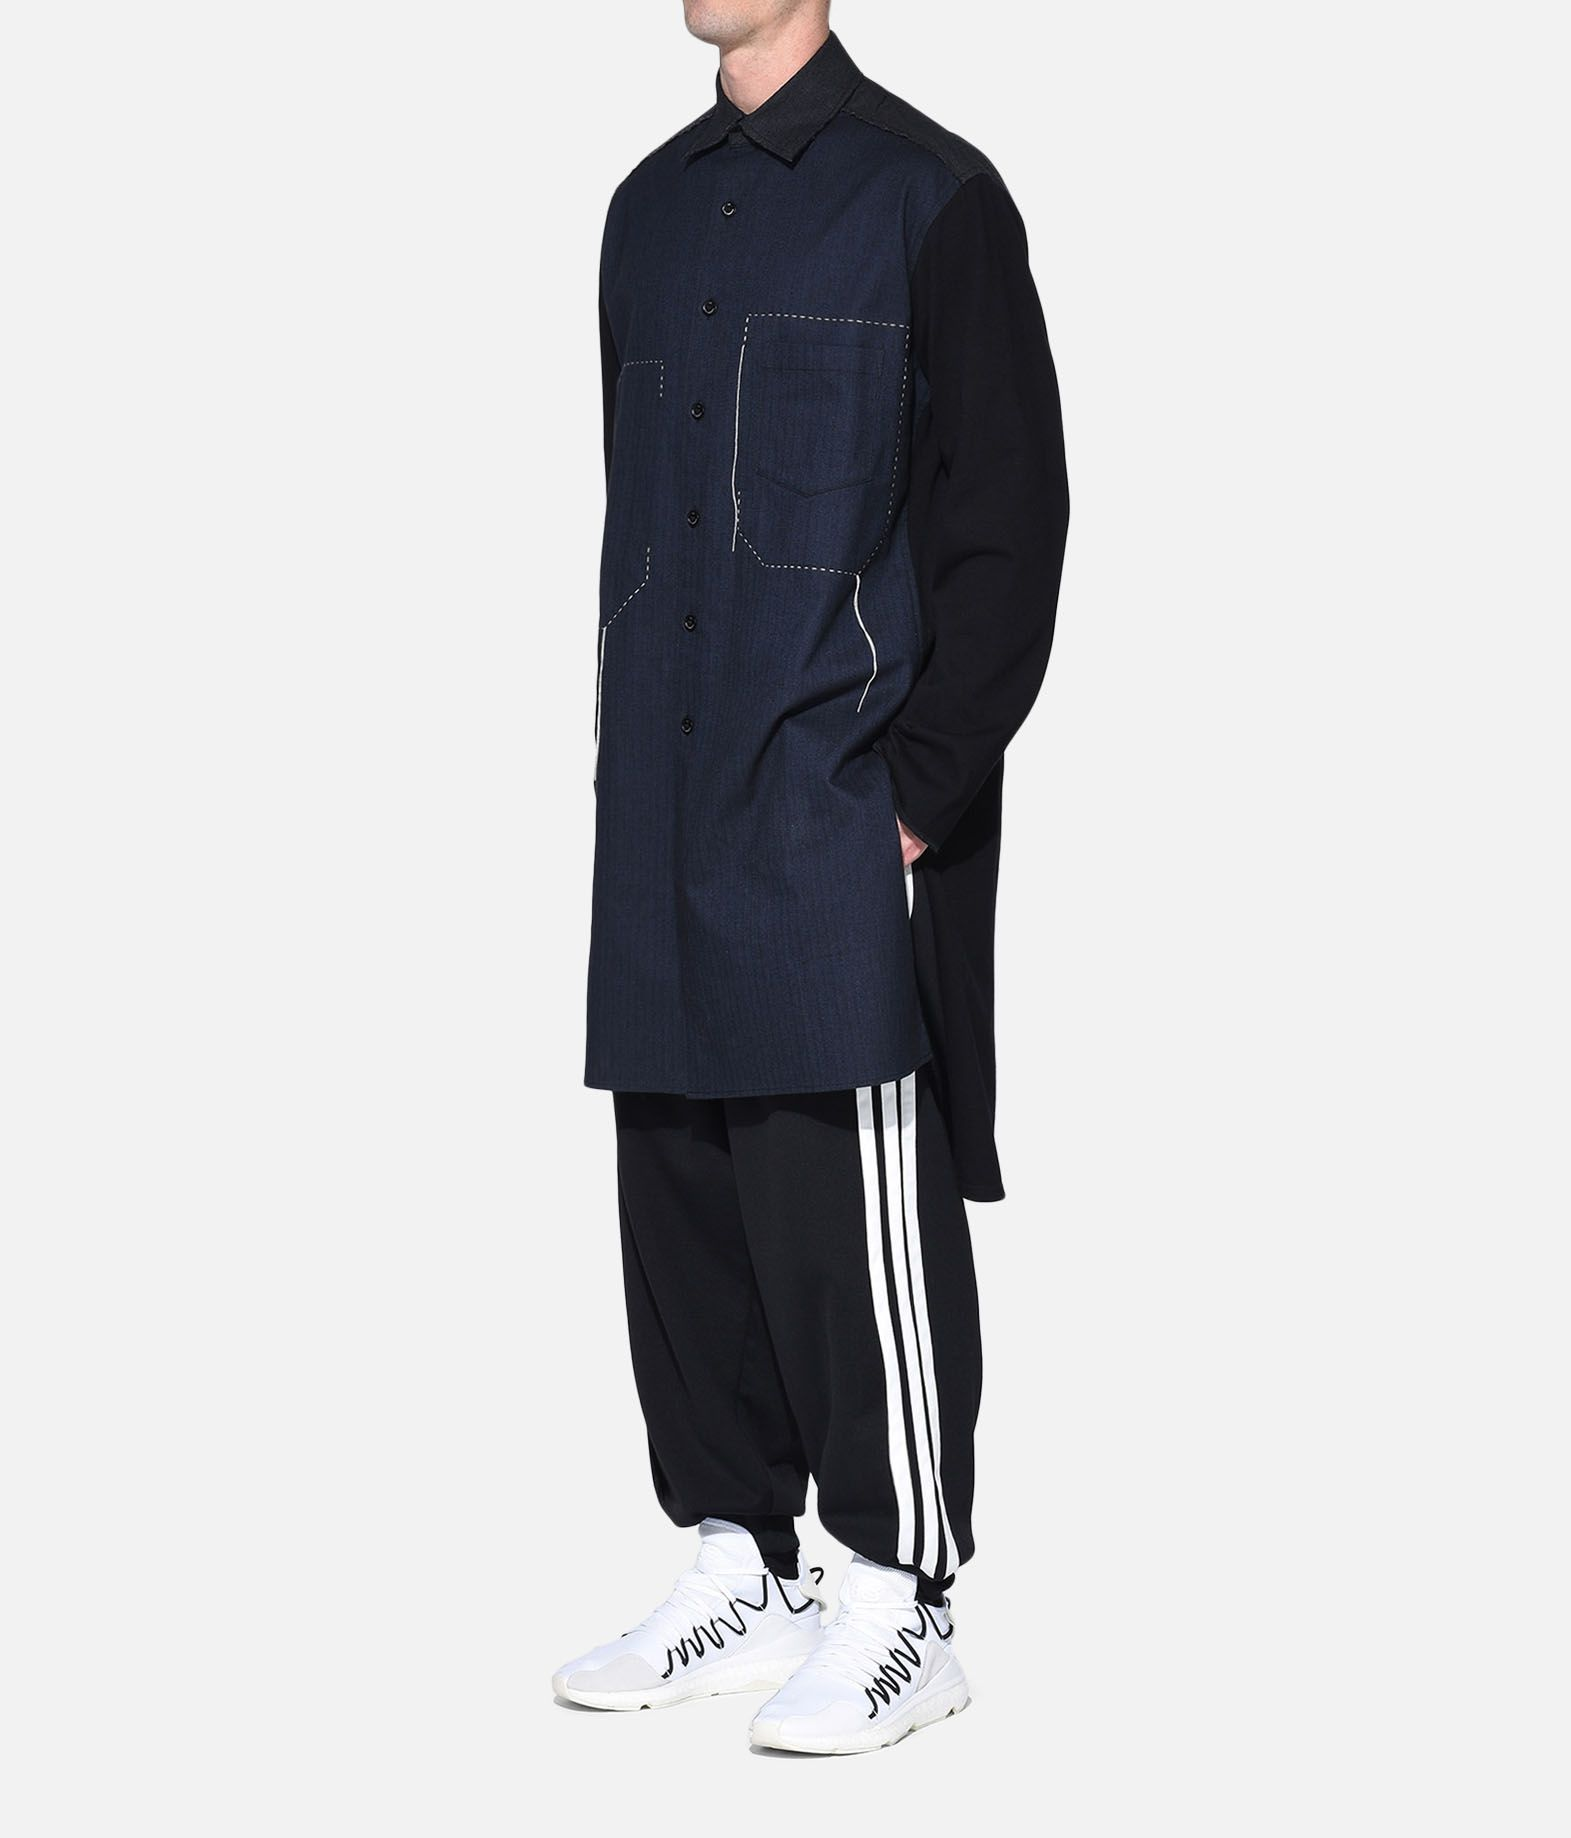 Y-3 Y-3 Herringbone Long Shirt Long sleeve shirt Man a